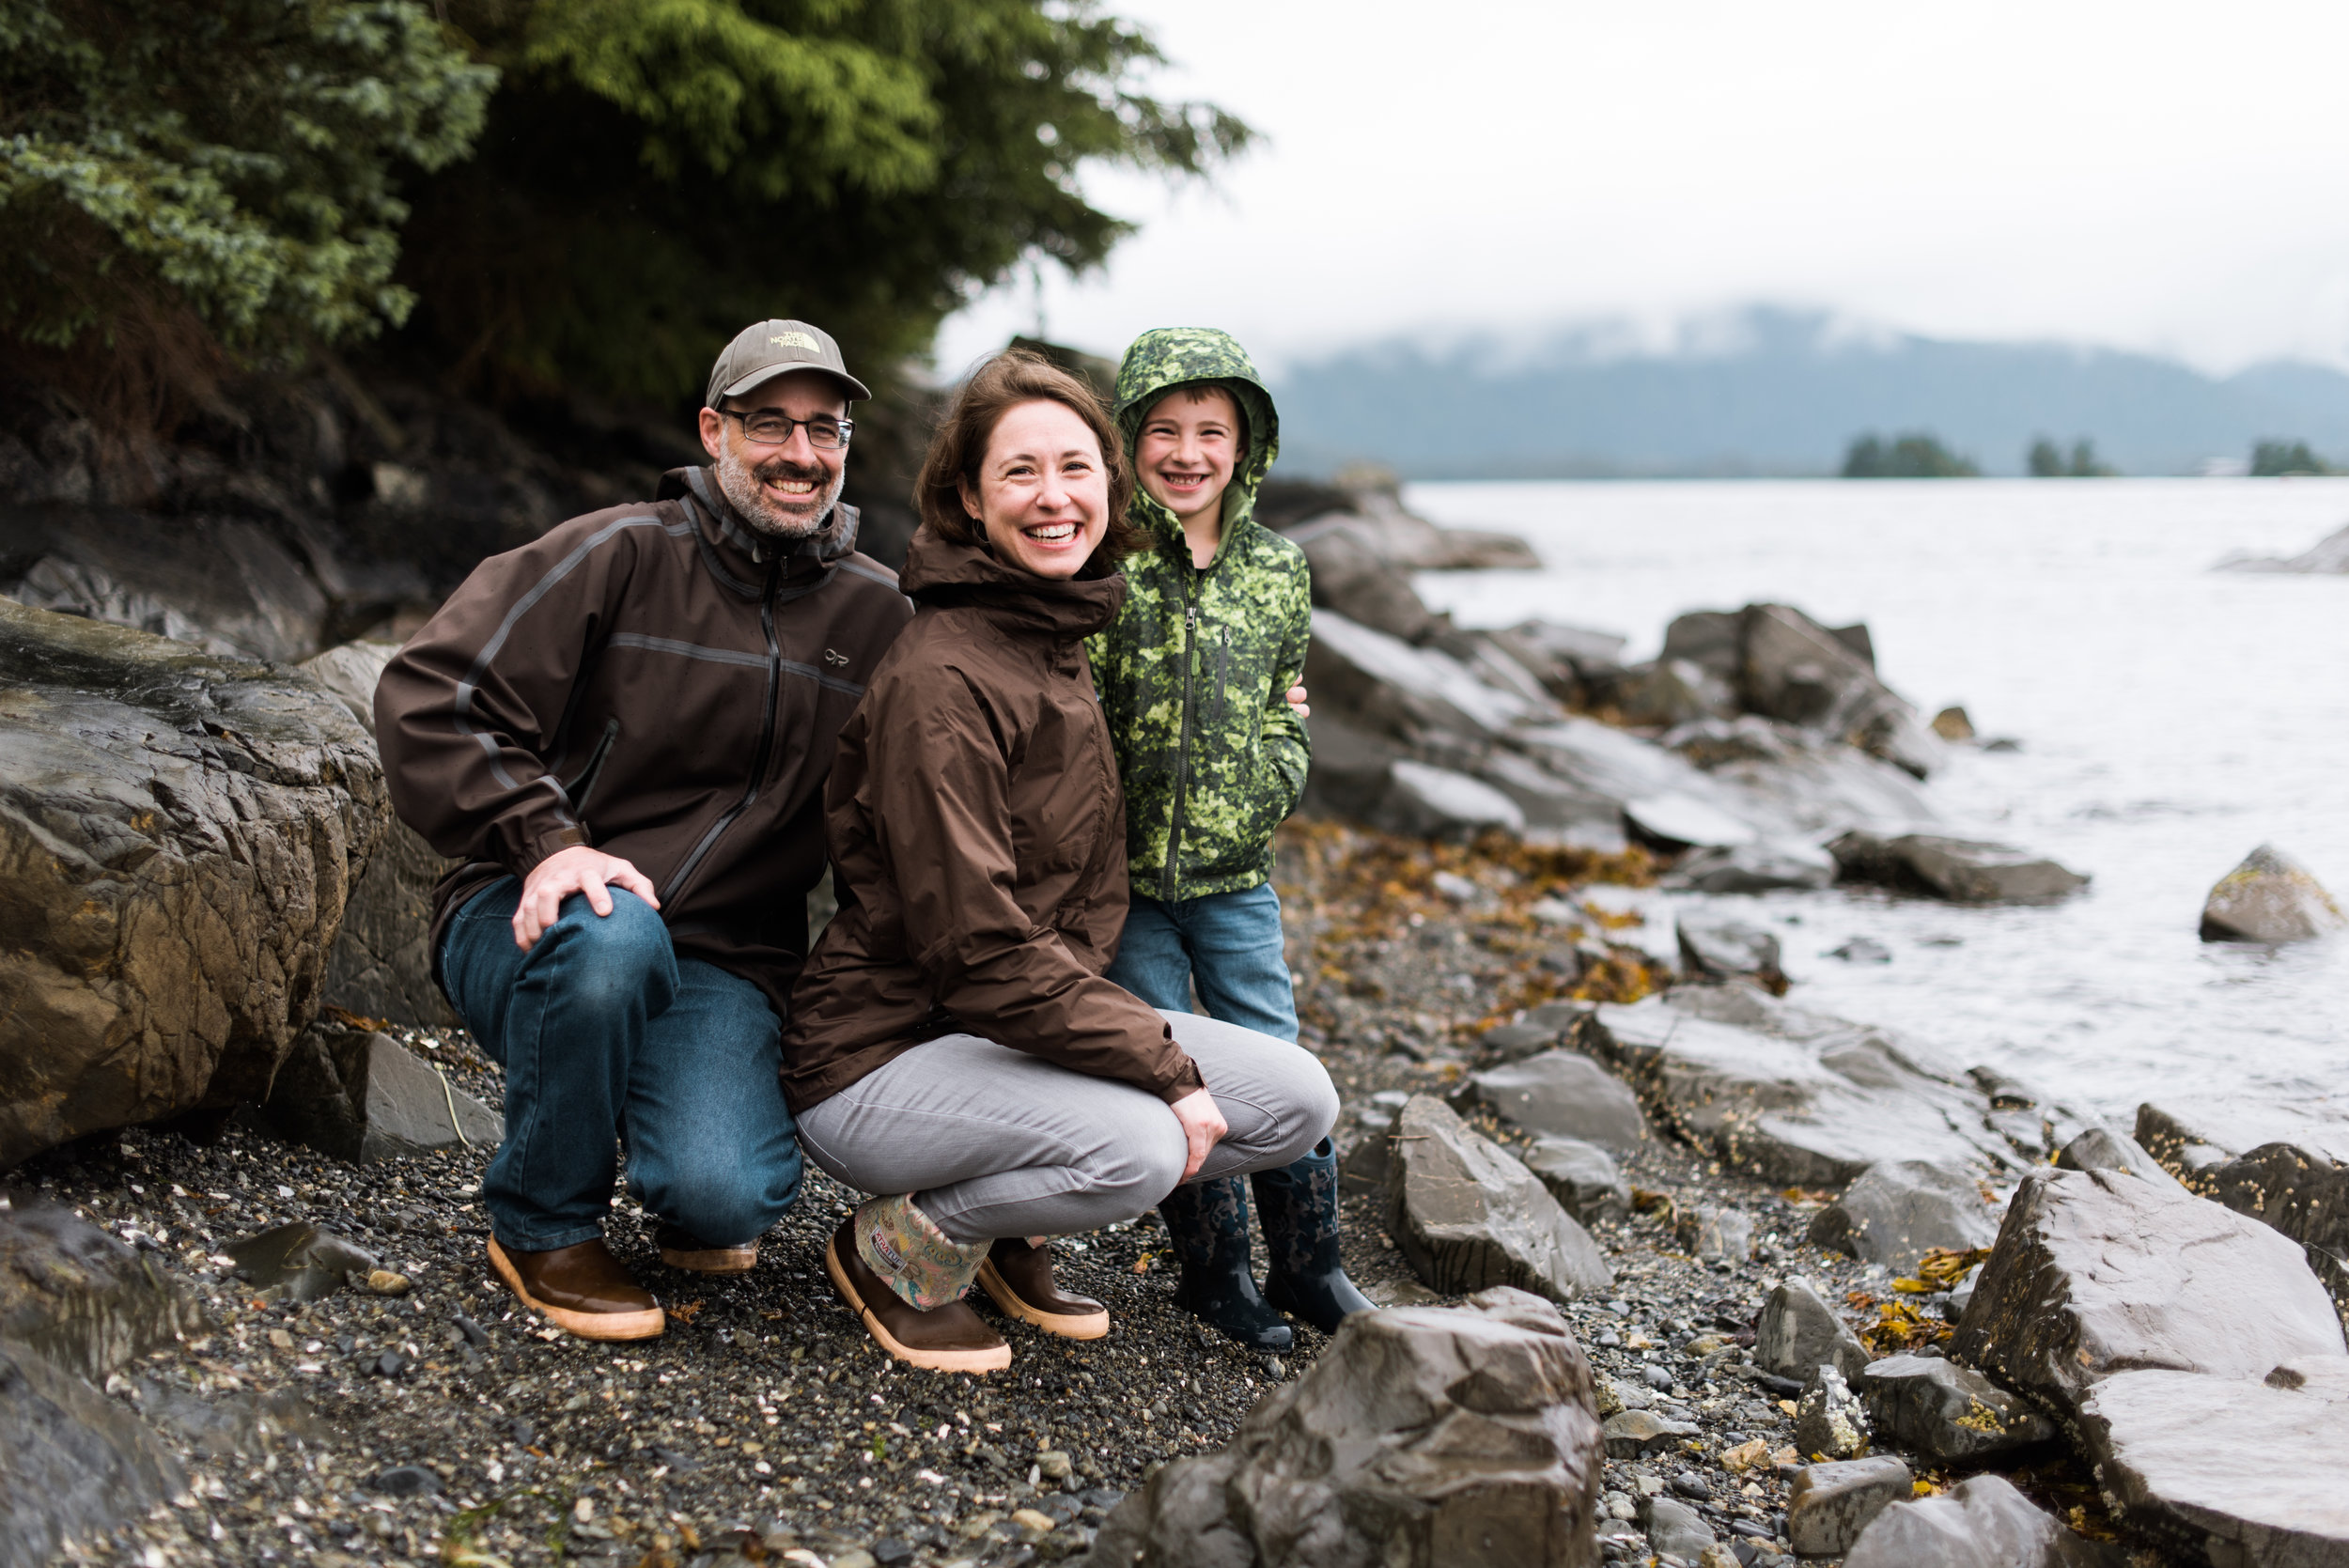 Family photoshoot - Sitka, Alaska - Kendall Rock Photography